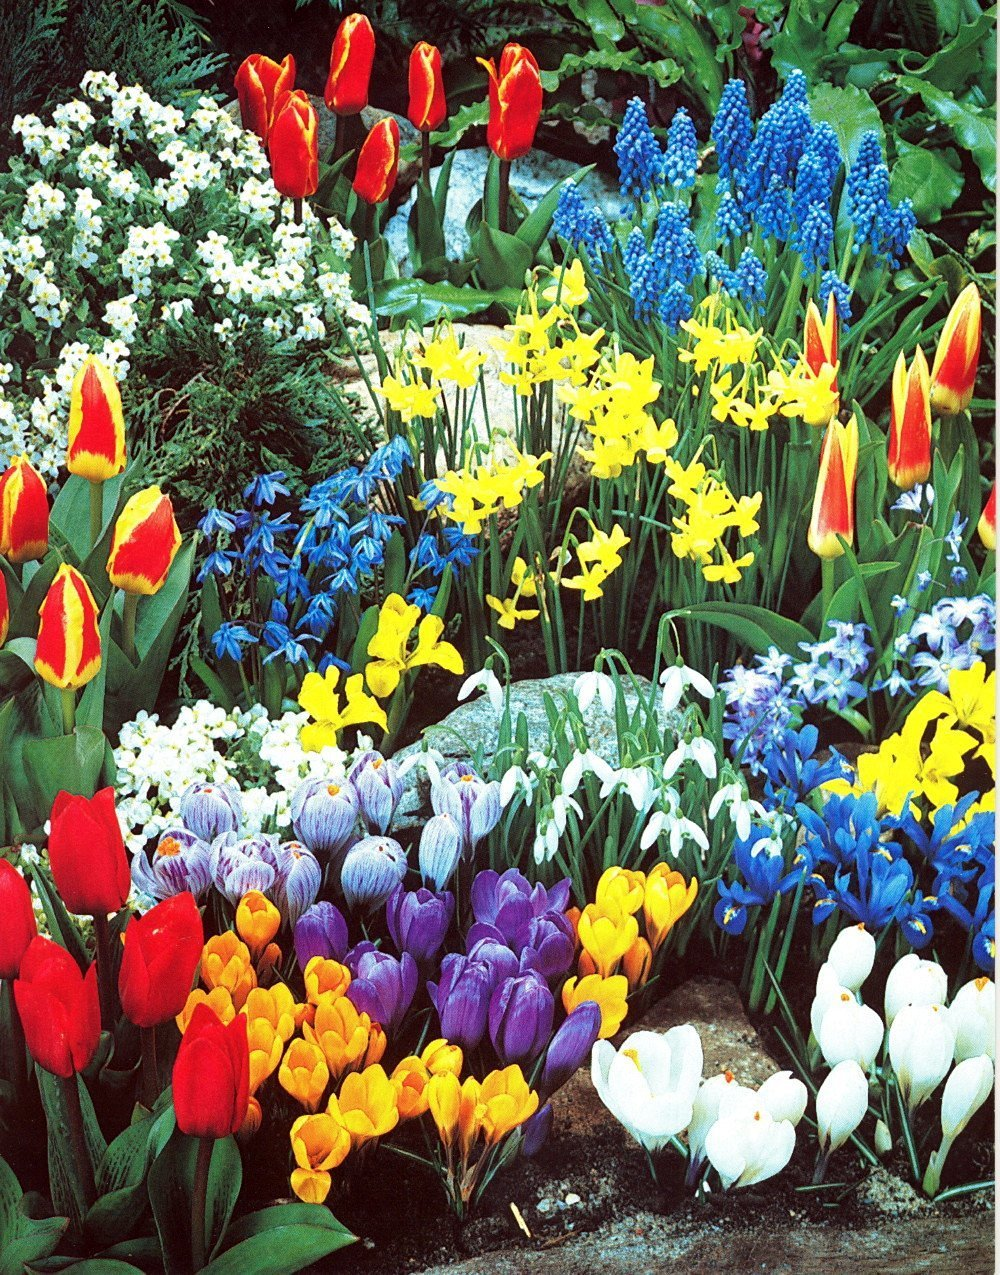 Complete Spring Flower Bulb Garden - 50 bulbs for 50 Days of Continuous Blooms (Spring Color from March through June) - Easy to Grow Fall Planting Bulbs by Willard & May